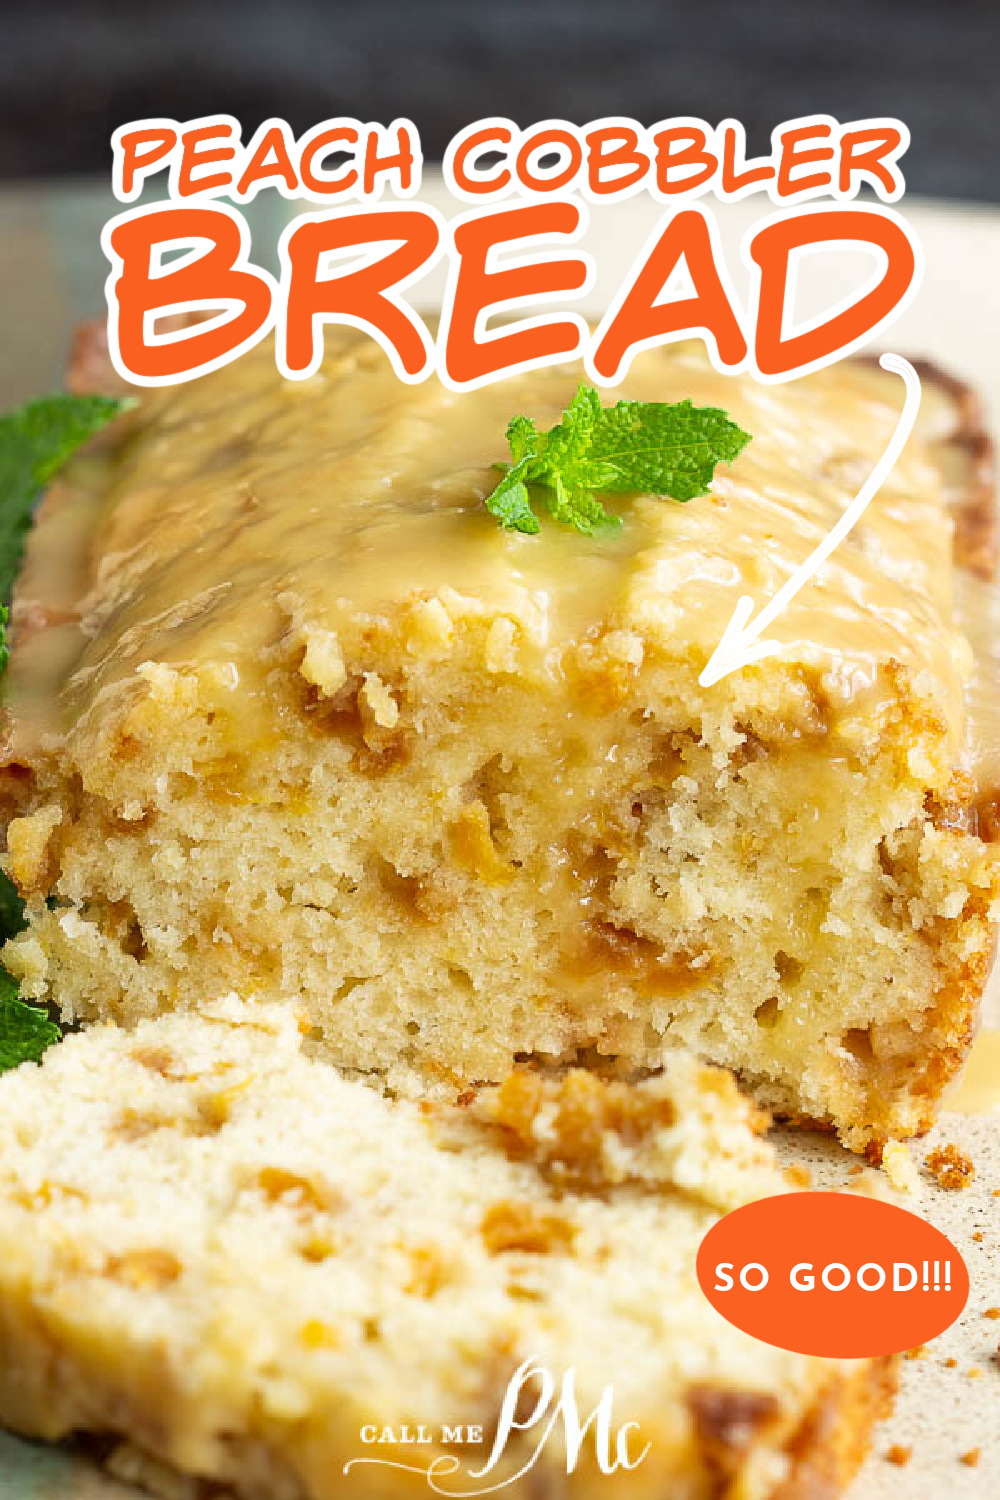 Fresh Peach Cobbler Bread Recipe has a crusty top, tender center, and is loaded with sweet, juicy peaches! #peach #bread #recipe